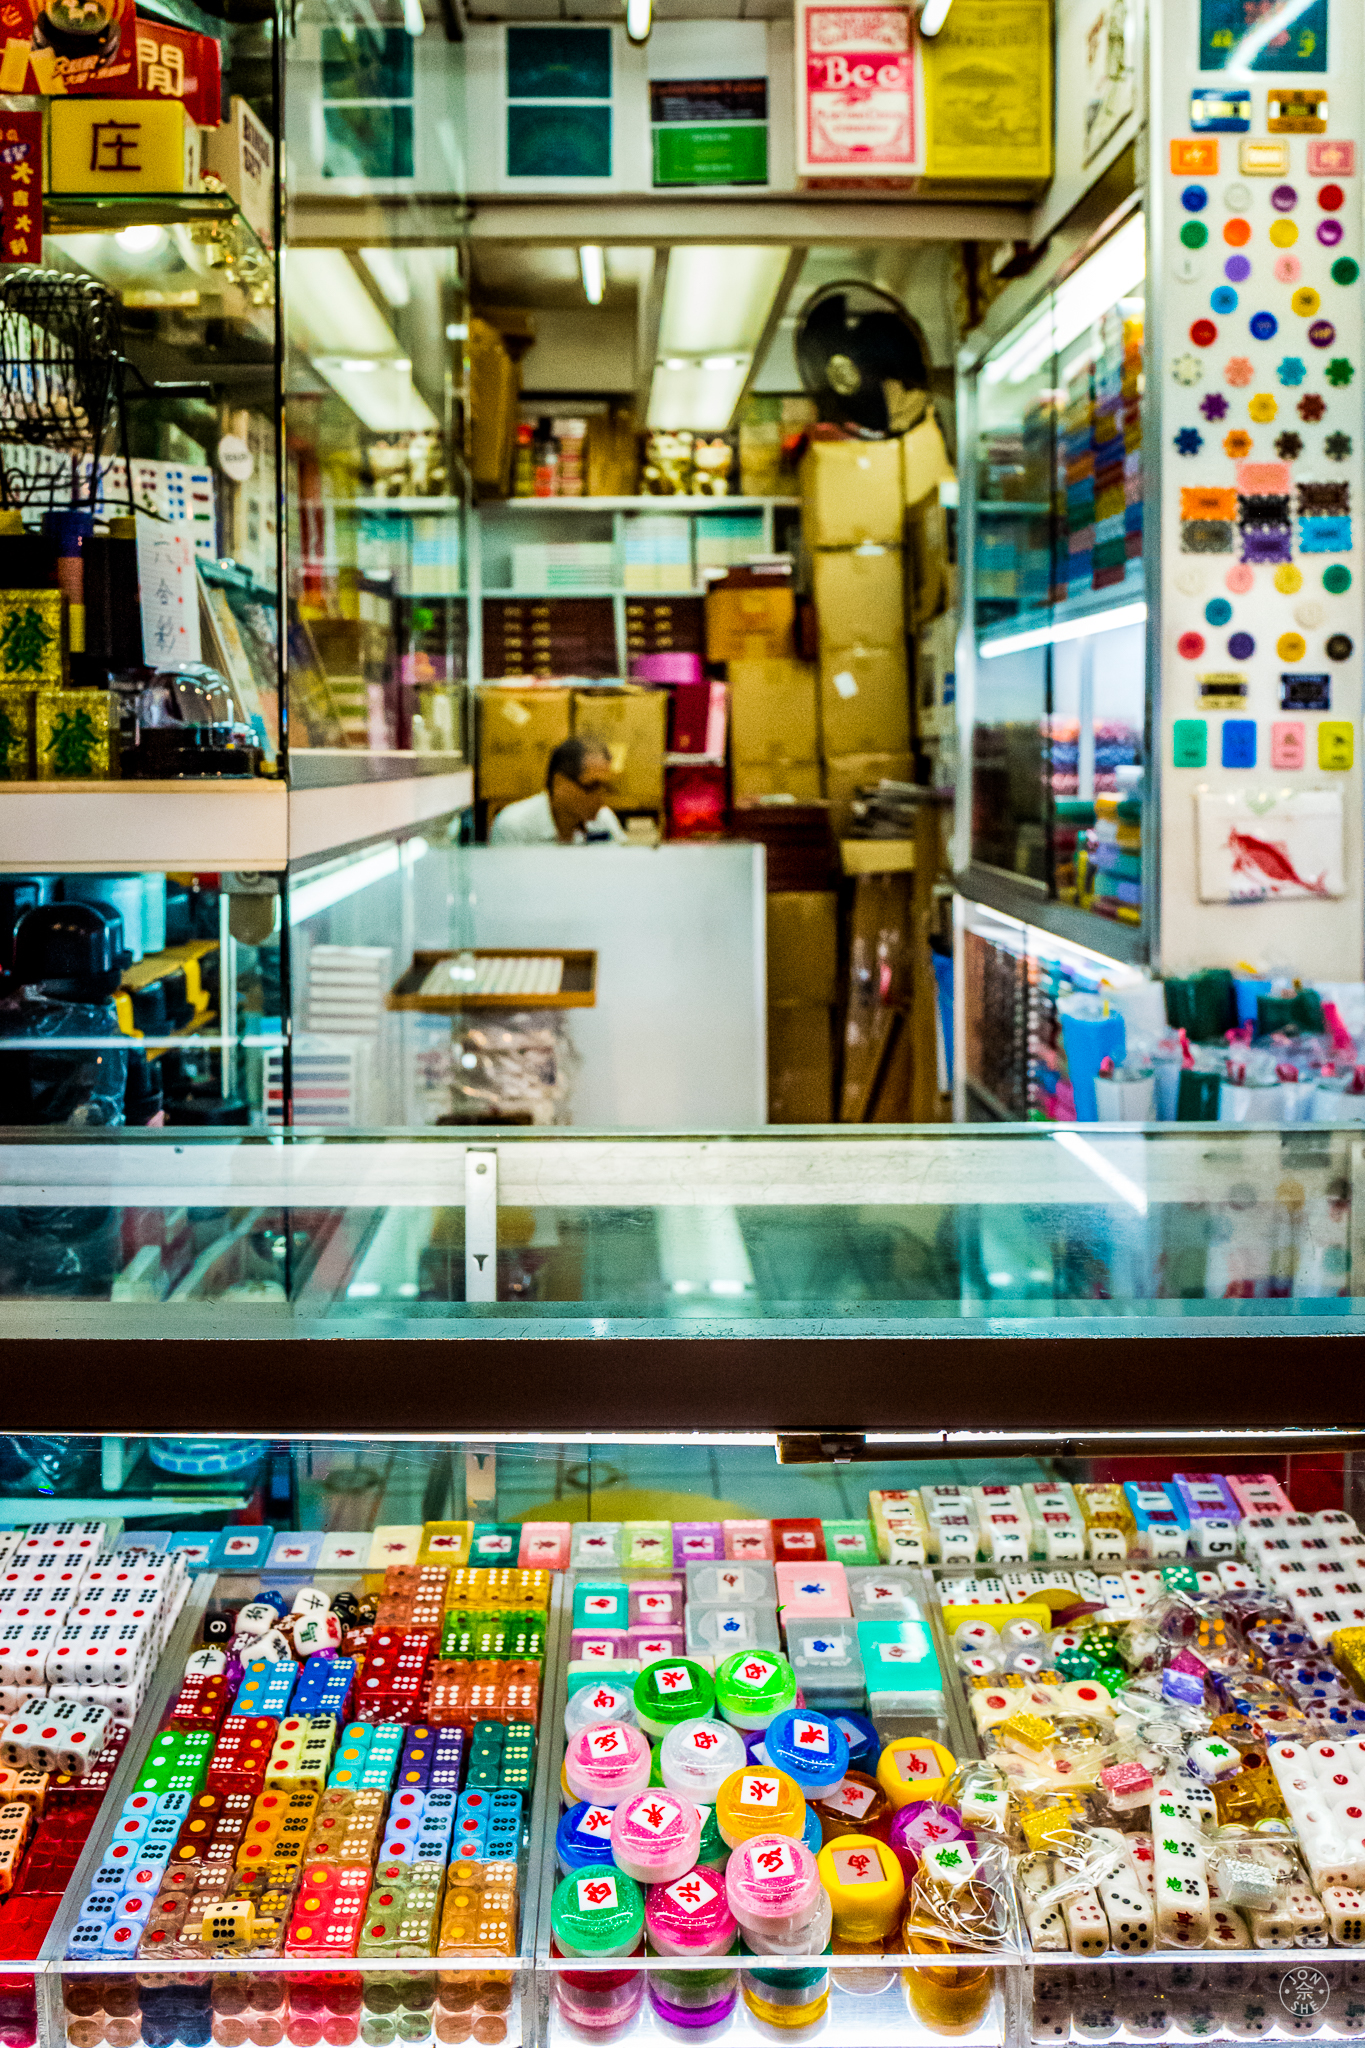 """""""Gambling and Gaming Supply Store"""". Late night gaming and gambling dens are another common site in Hong Kong, as are vendors that support that nocturnal ecosystem. This shot is of a supplier of dice, chips, mahjong tiles, cards, and the myriad other paraphernalia needed for games. Kowloon, Hong Kong, China. June 2016. Leica Q (Typ 116), Leica Summilux-M 28mm ASPH. © Jon She."""